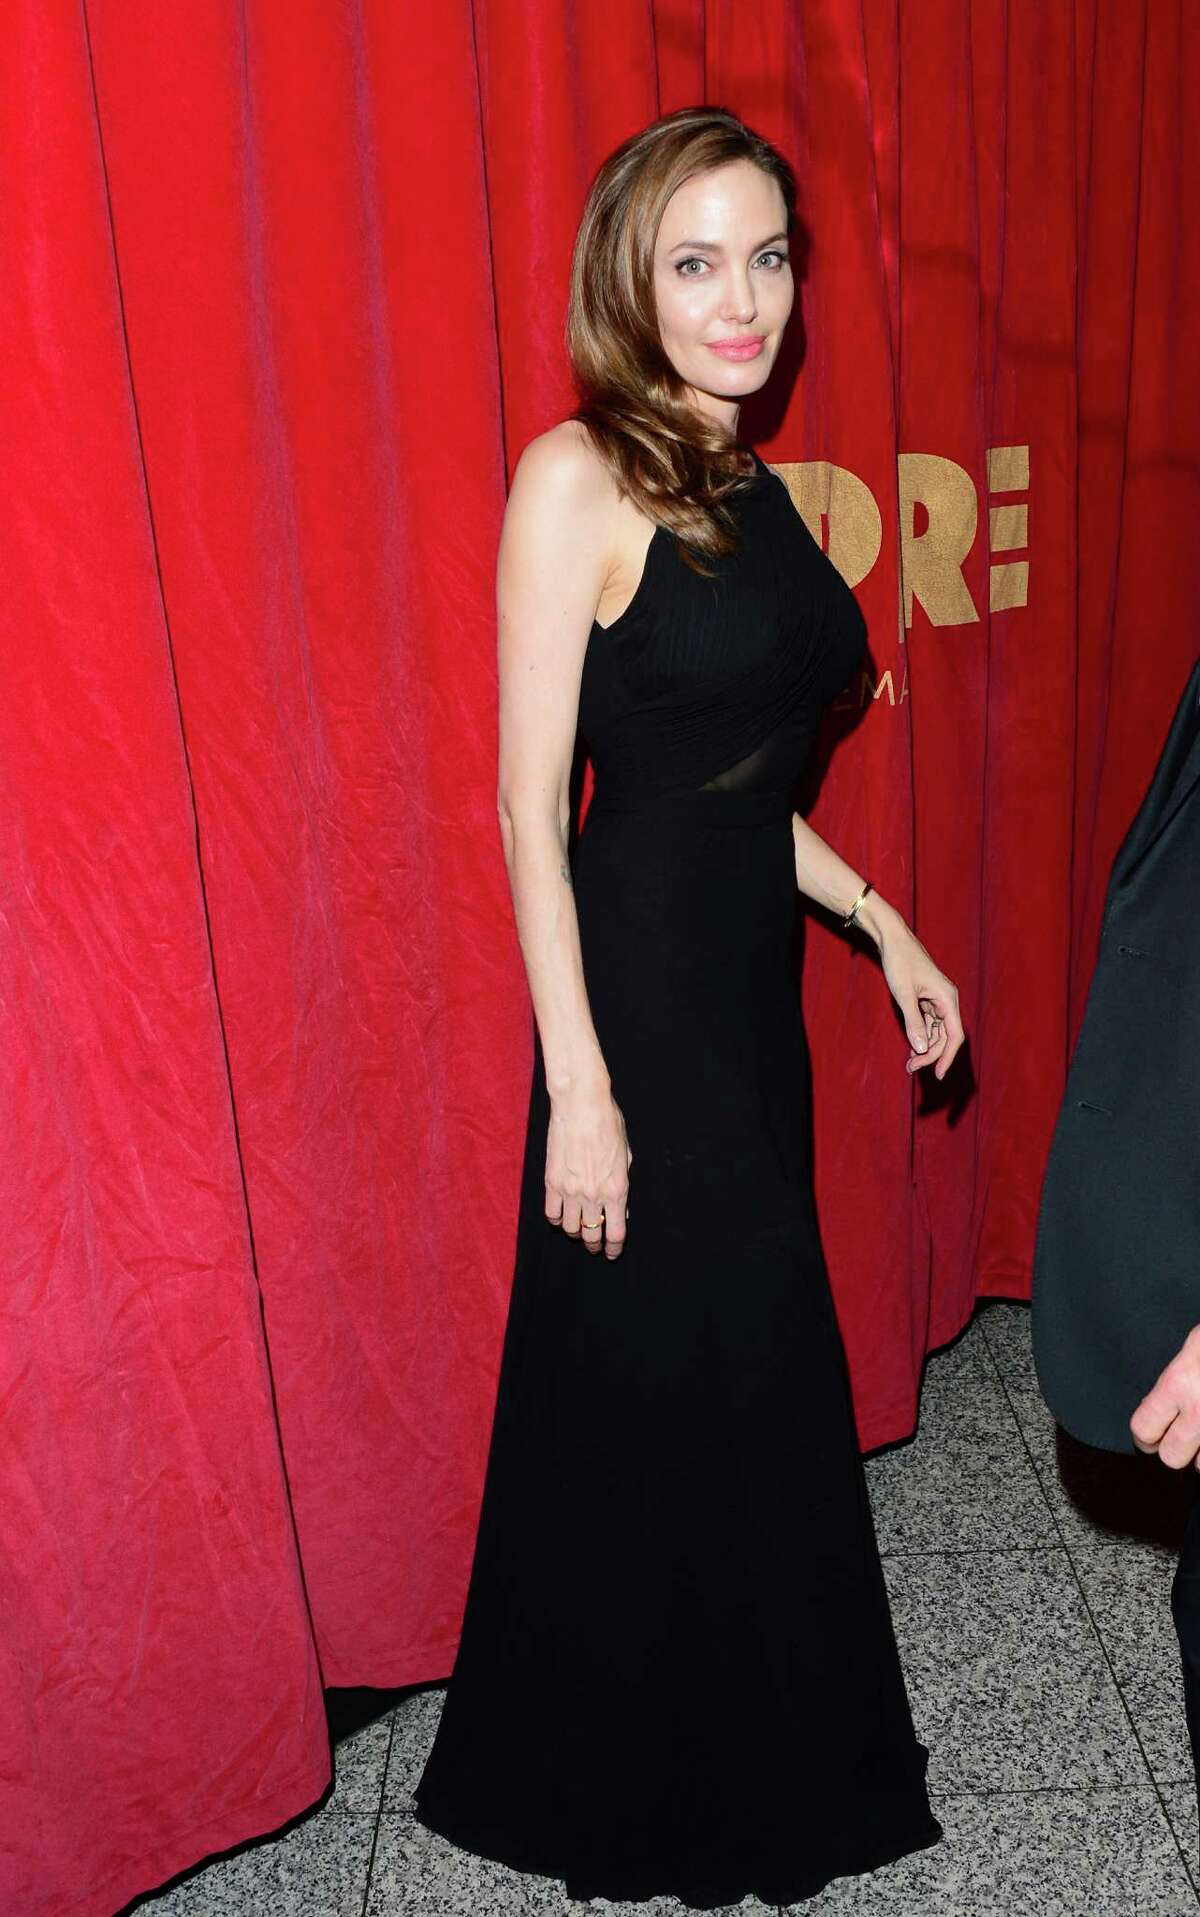 Angelina Jolie arrives at the World Premiere of 'World War Z' at the Empire Cinema in London, Sunday June 2nd, 2013.